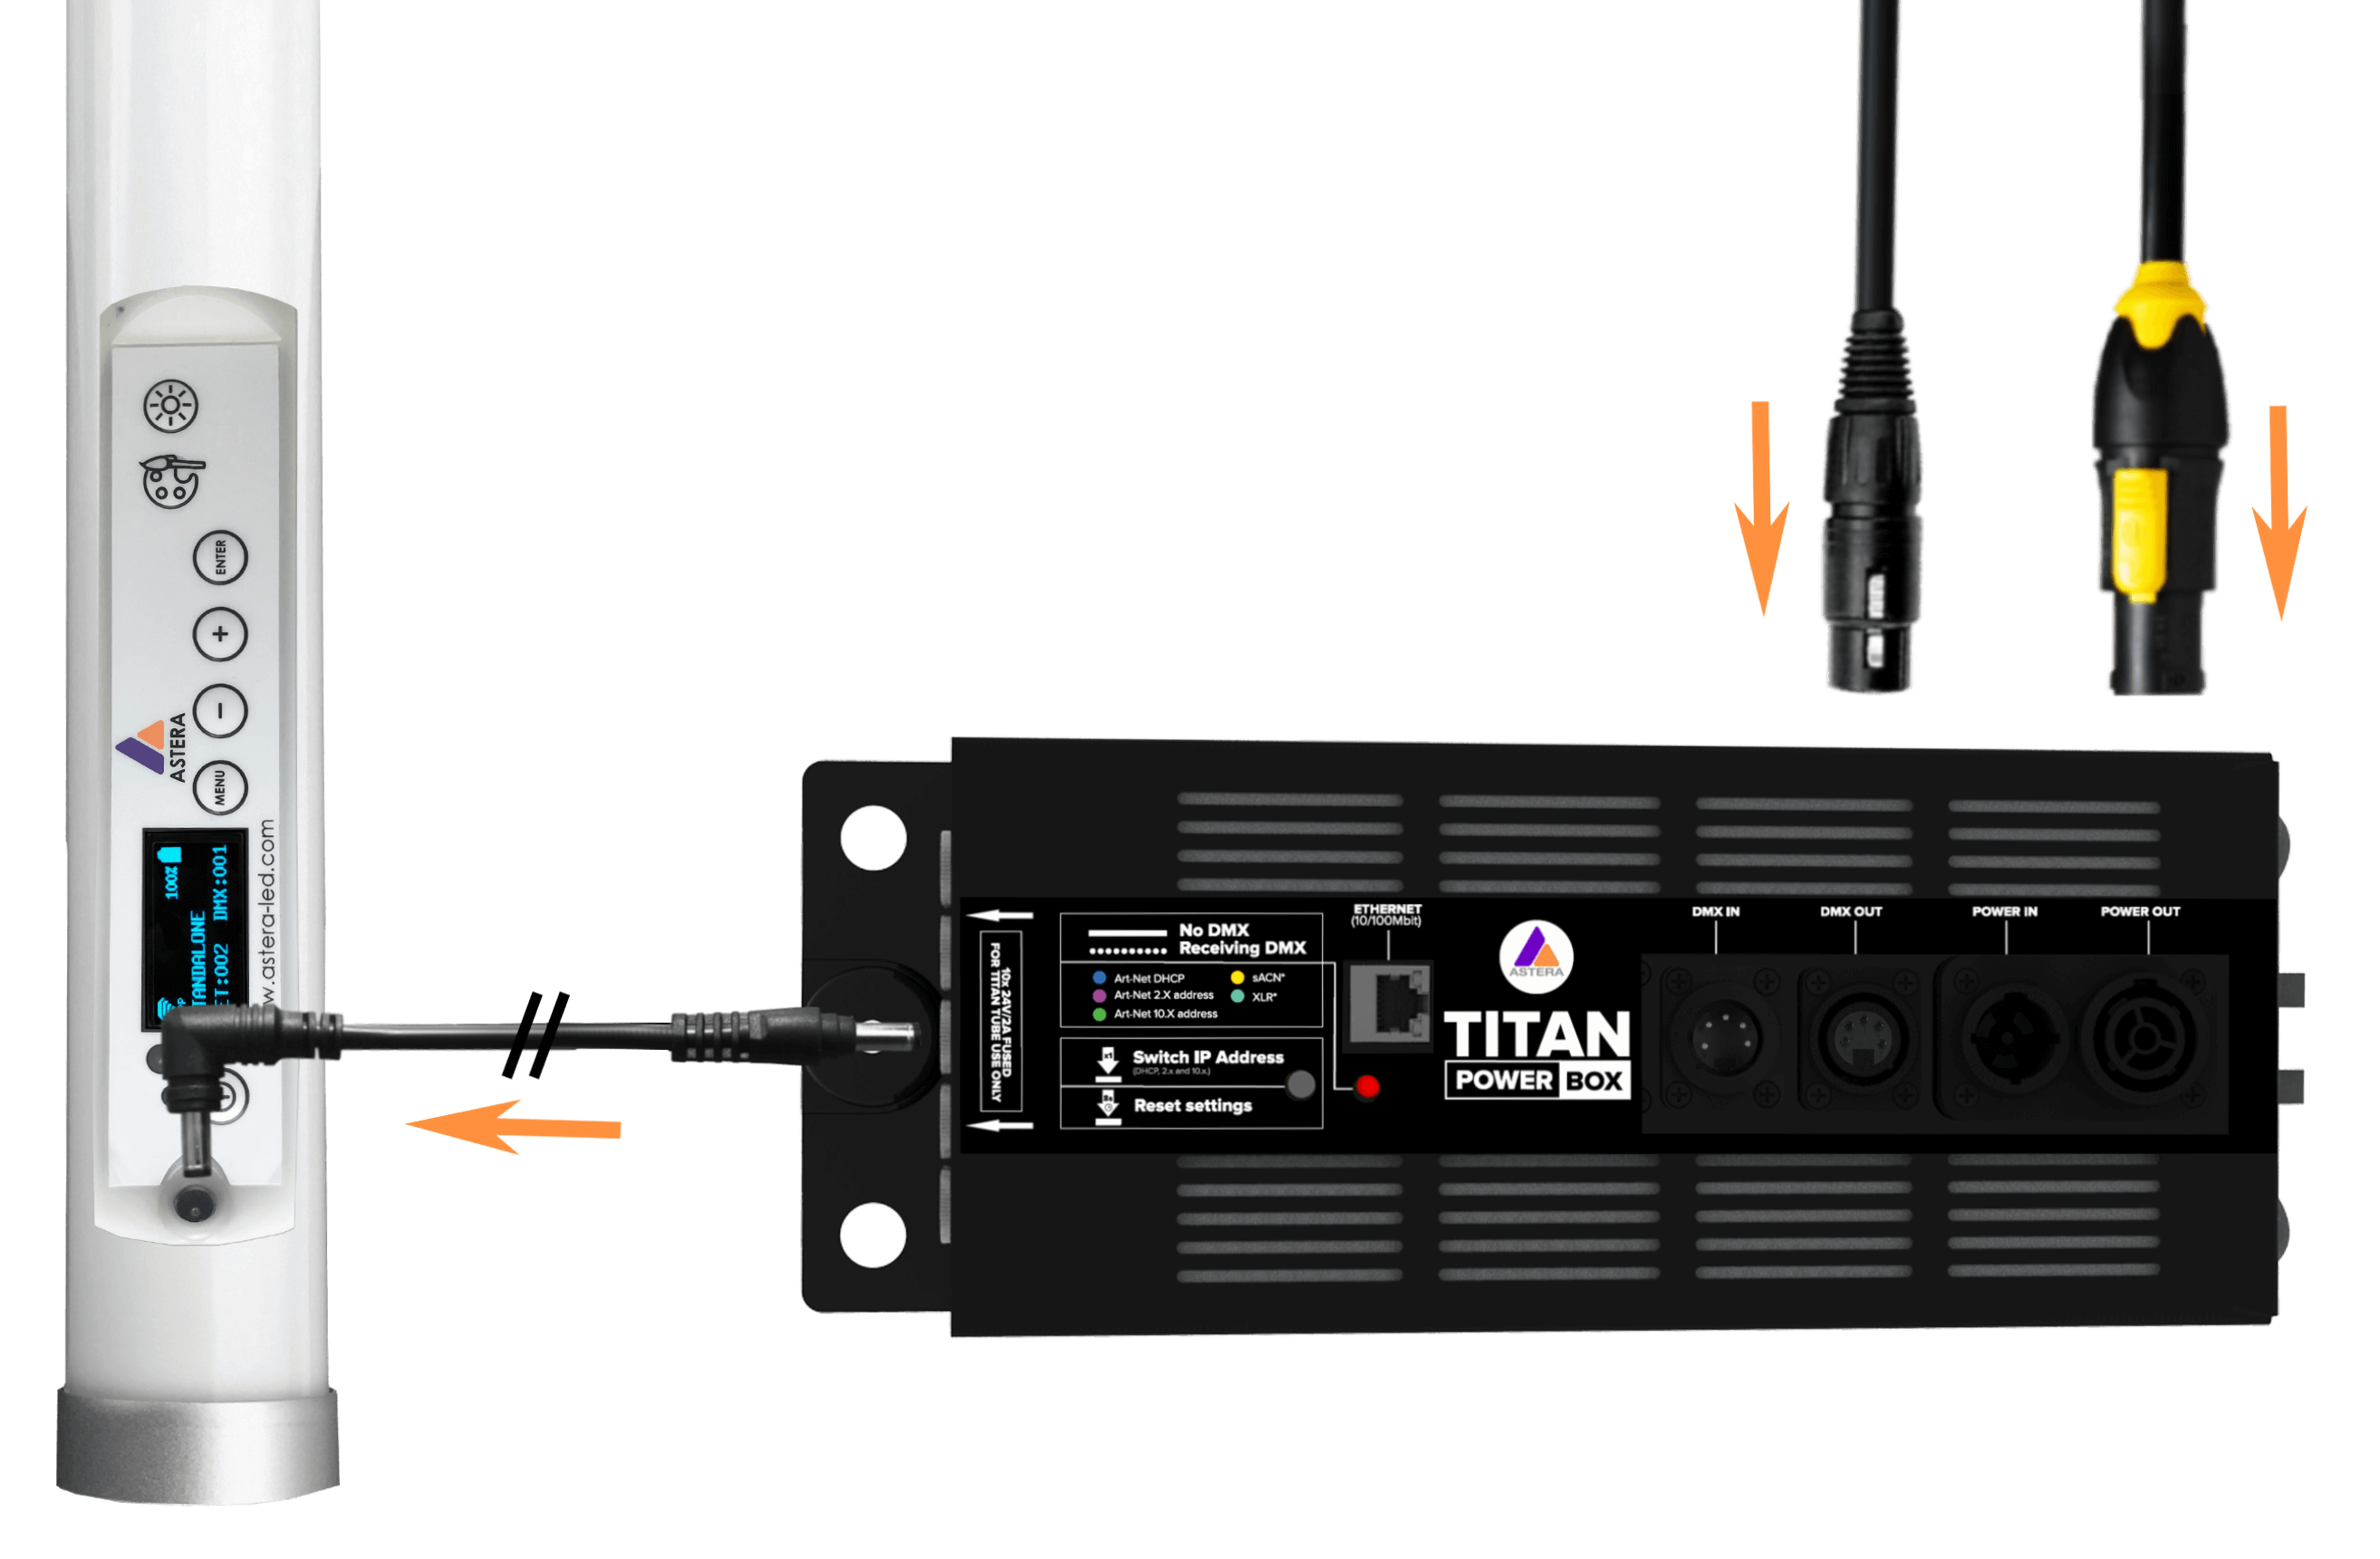 Titan Tube: The Ultimate Film Lighting Tube for TV, Cinema and Photography.